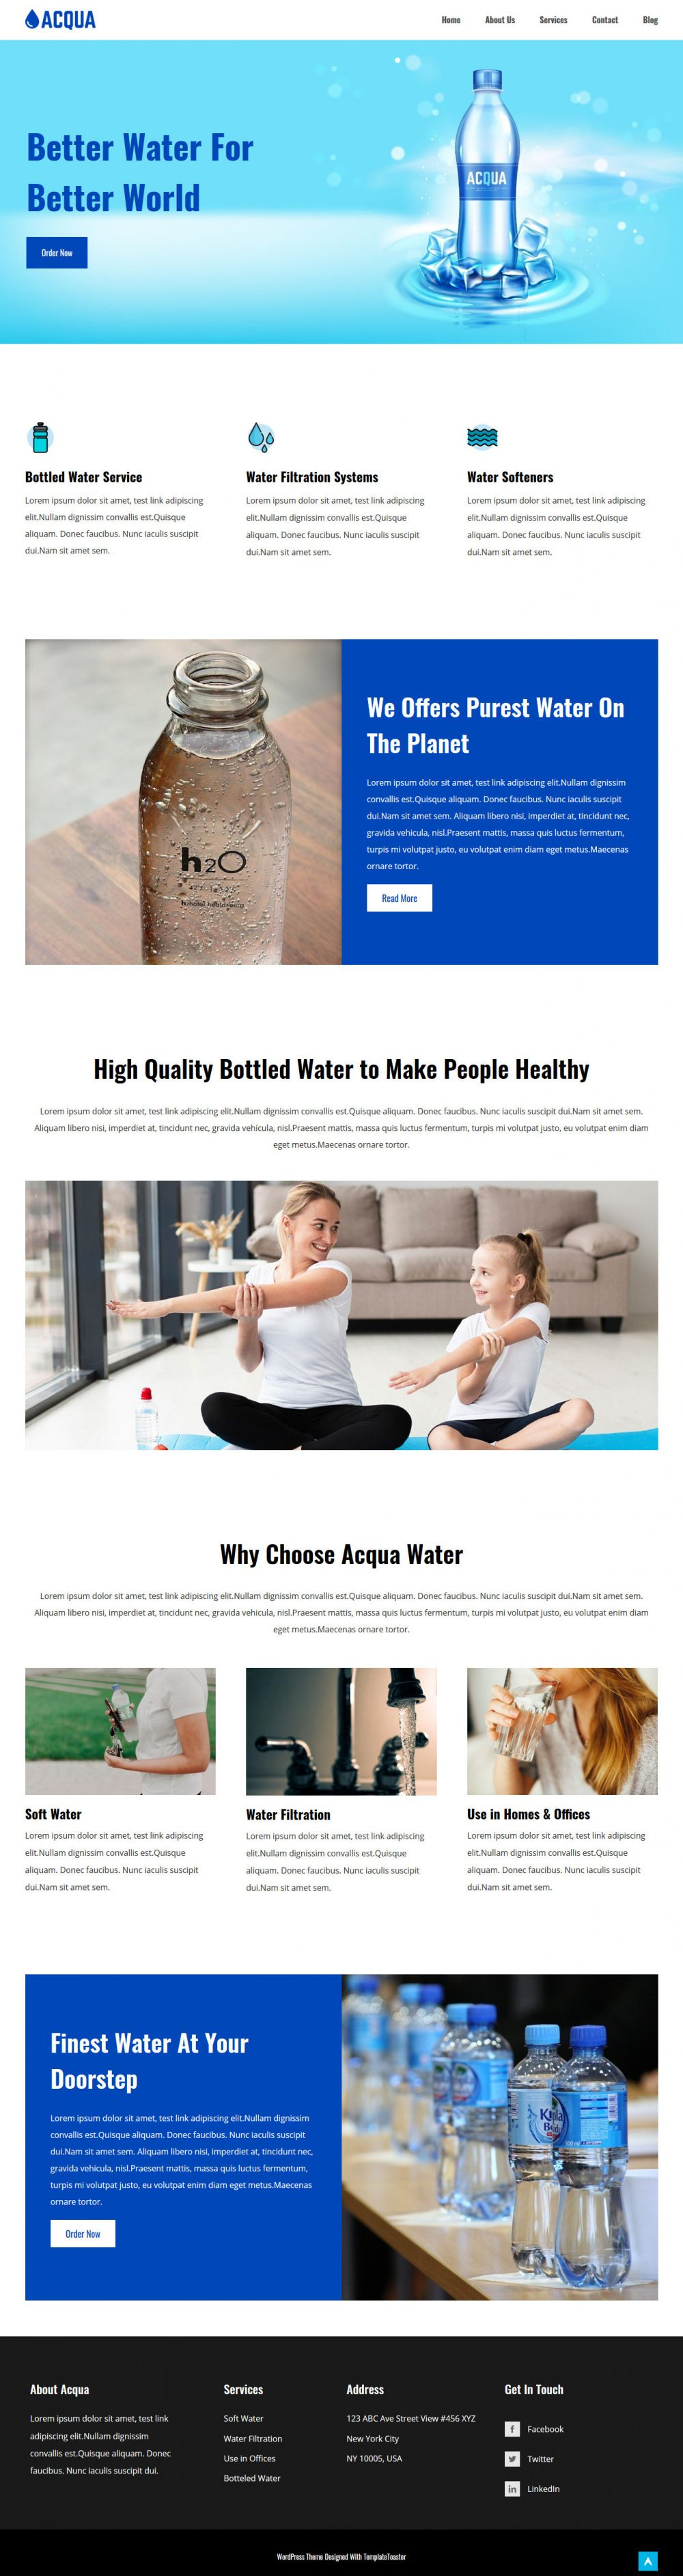 acqua water purifier drupal theme